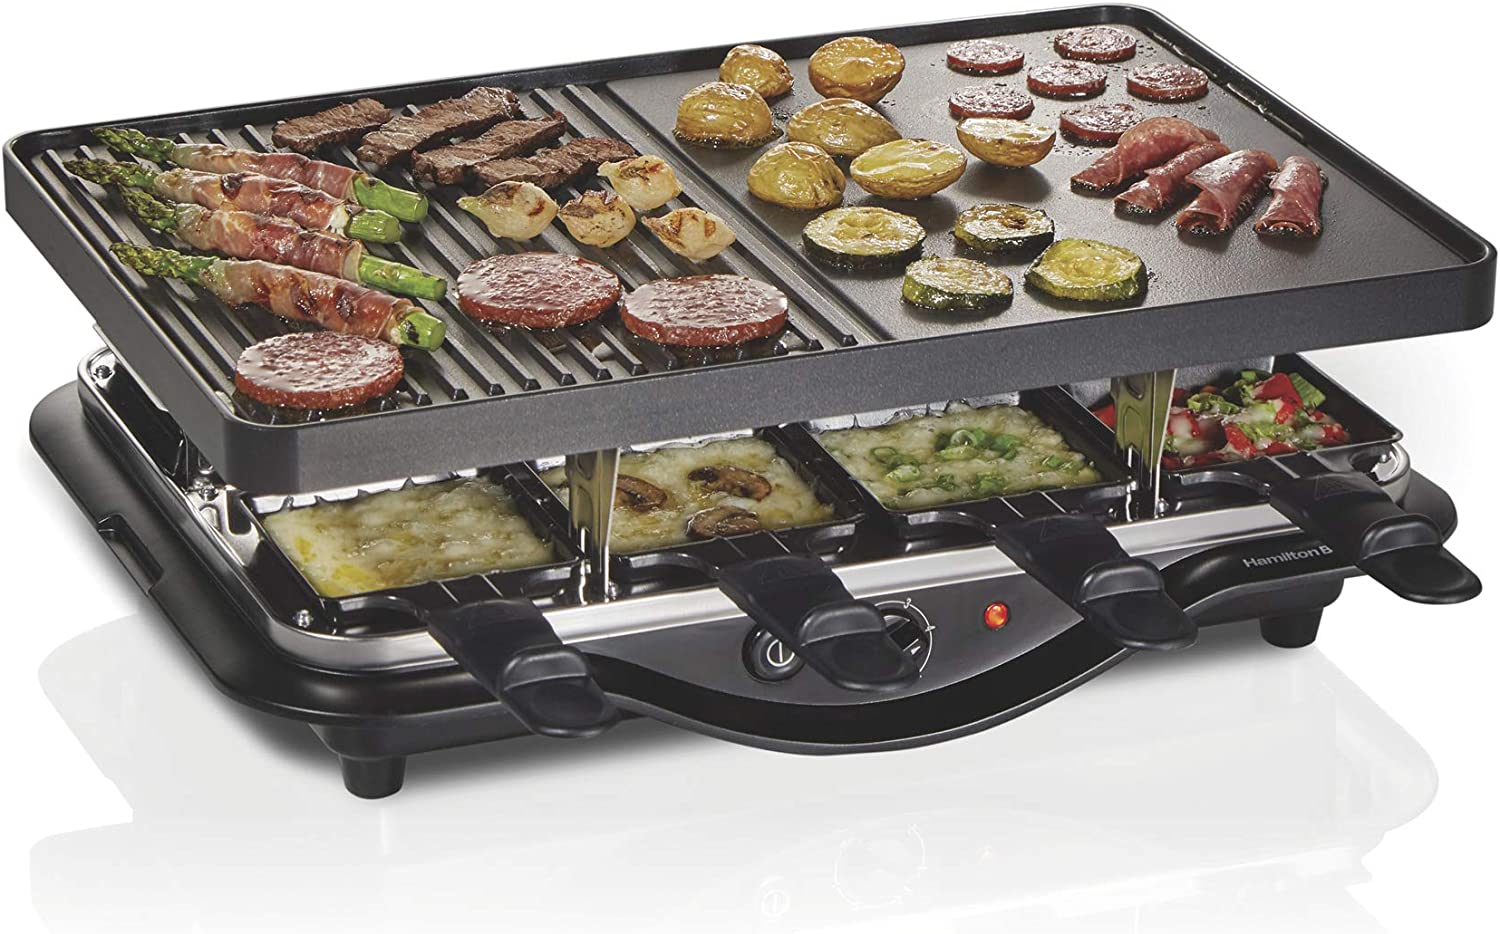 Hamilton Beach 31612-MX 8-Serving Raclette Electric Indoor Grill $38.91 Coupon